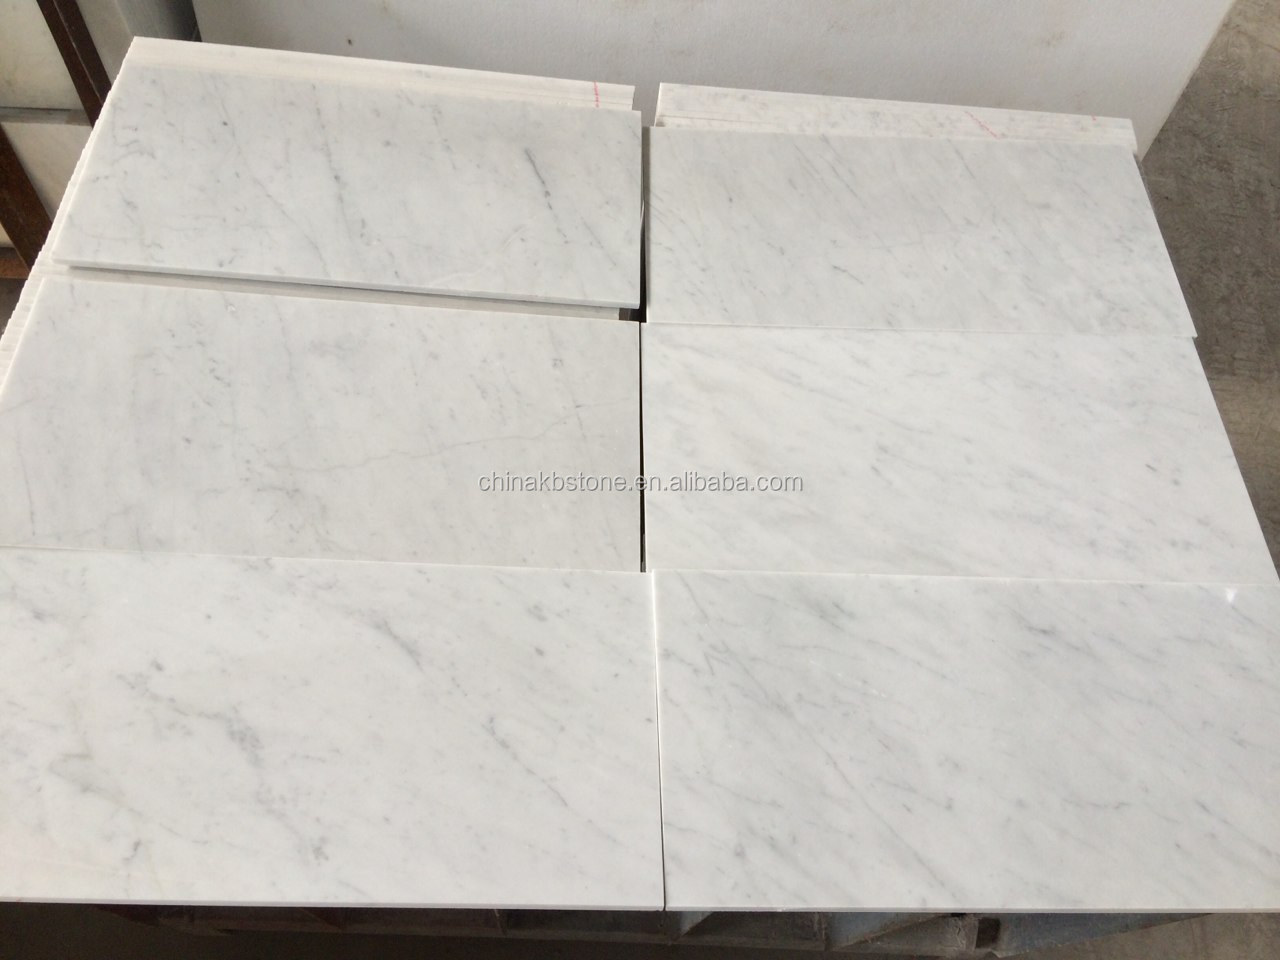 Italian Carrara Marble Floor Tiles 12x24 Tile Pattern Images Marble